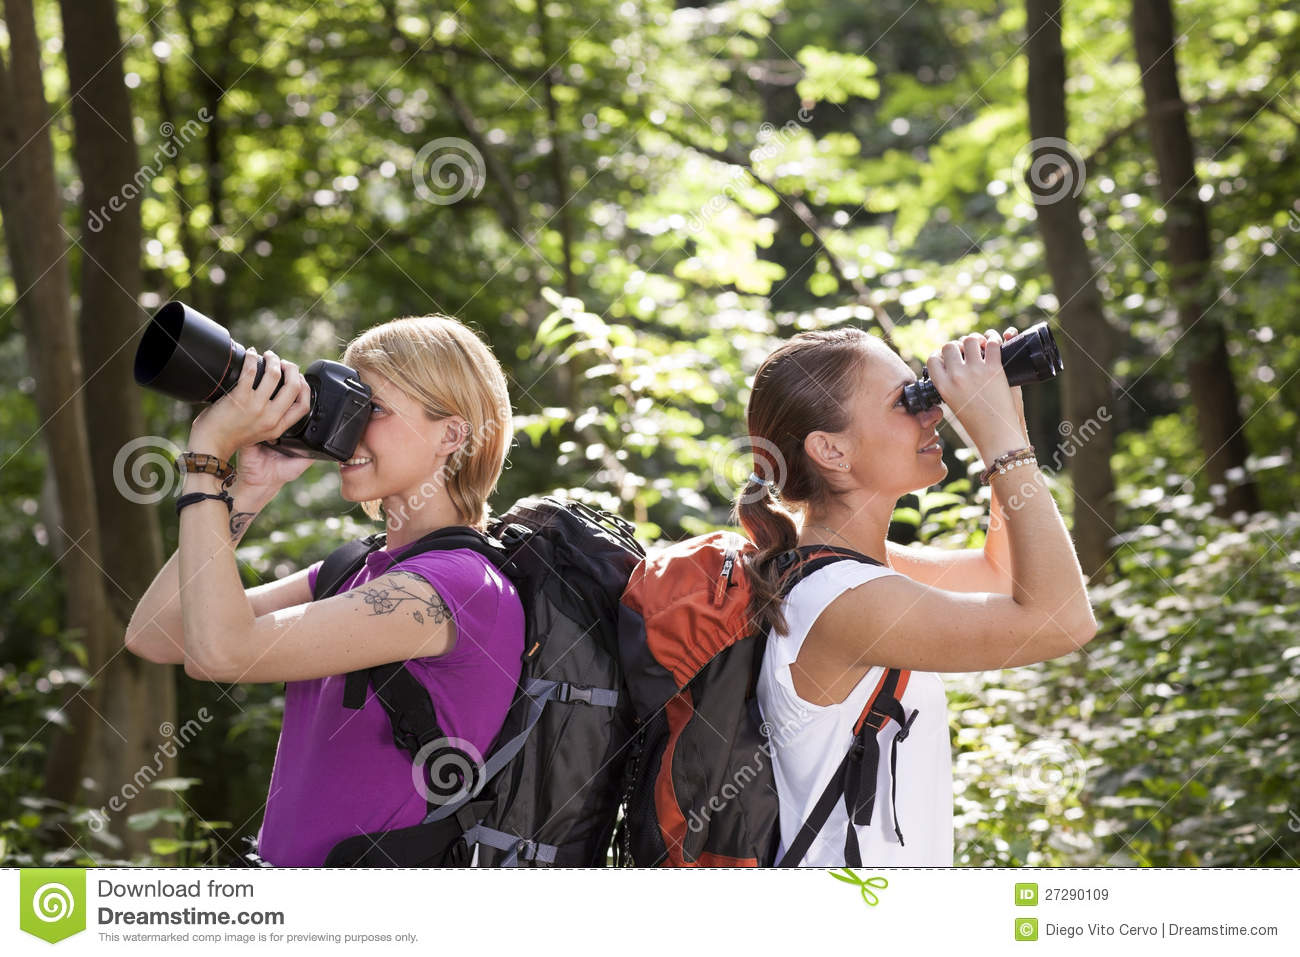 Two women hiking and looking with binoculars